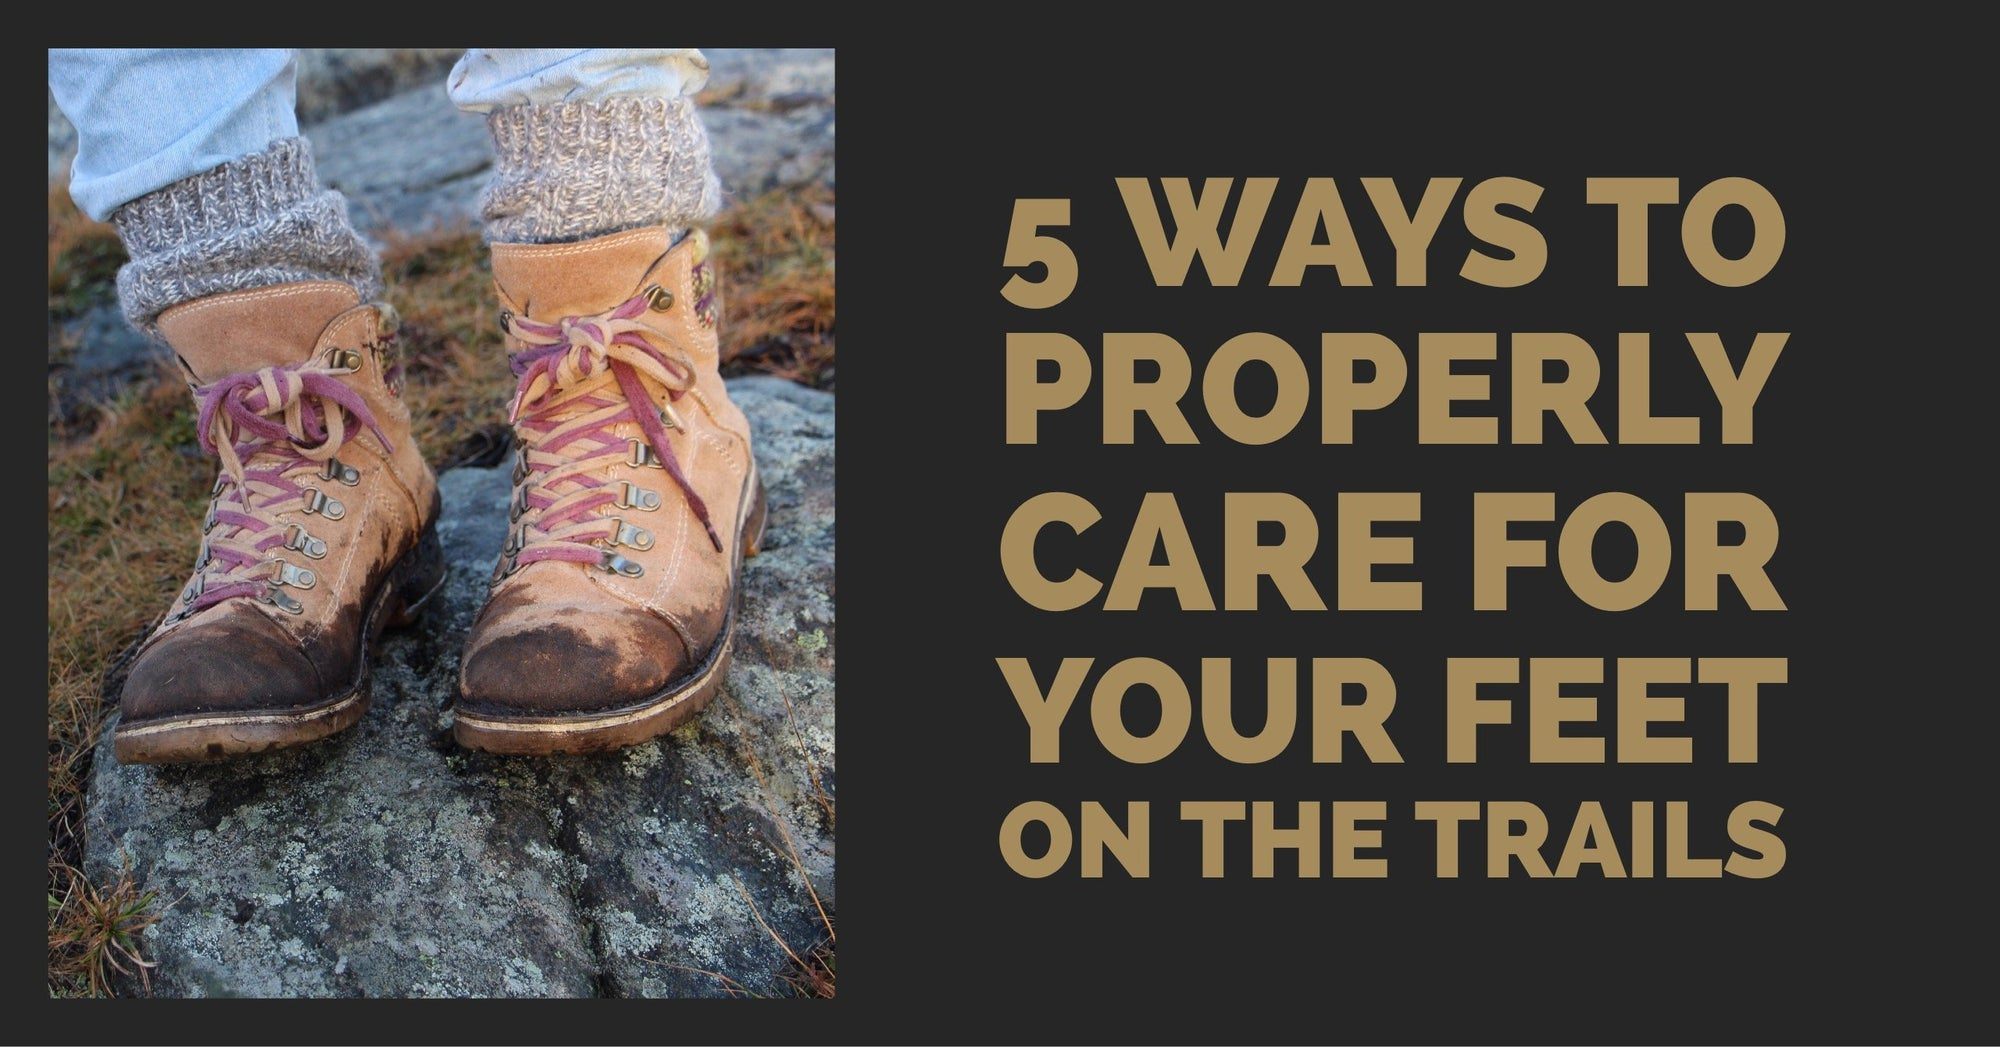 5 ways to properly care for your feet on the trails. Visit idhikethat.com to learn how to keep your feet happy on the trails.